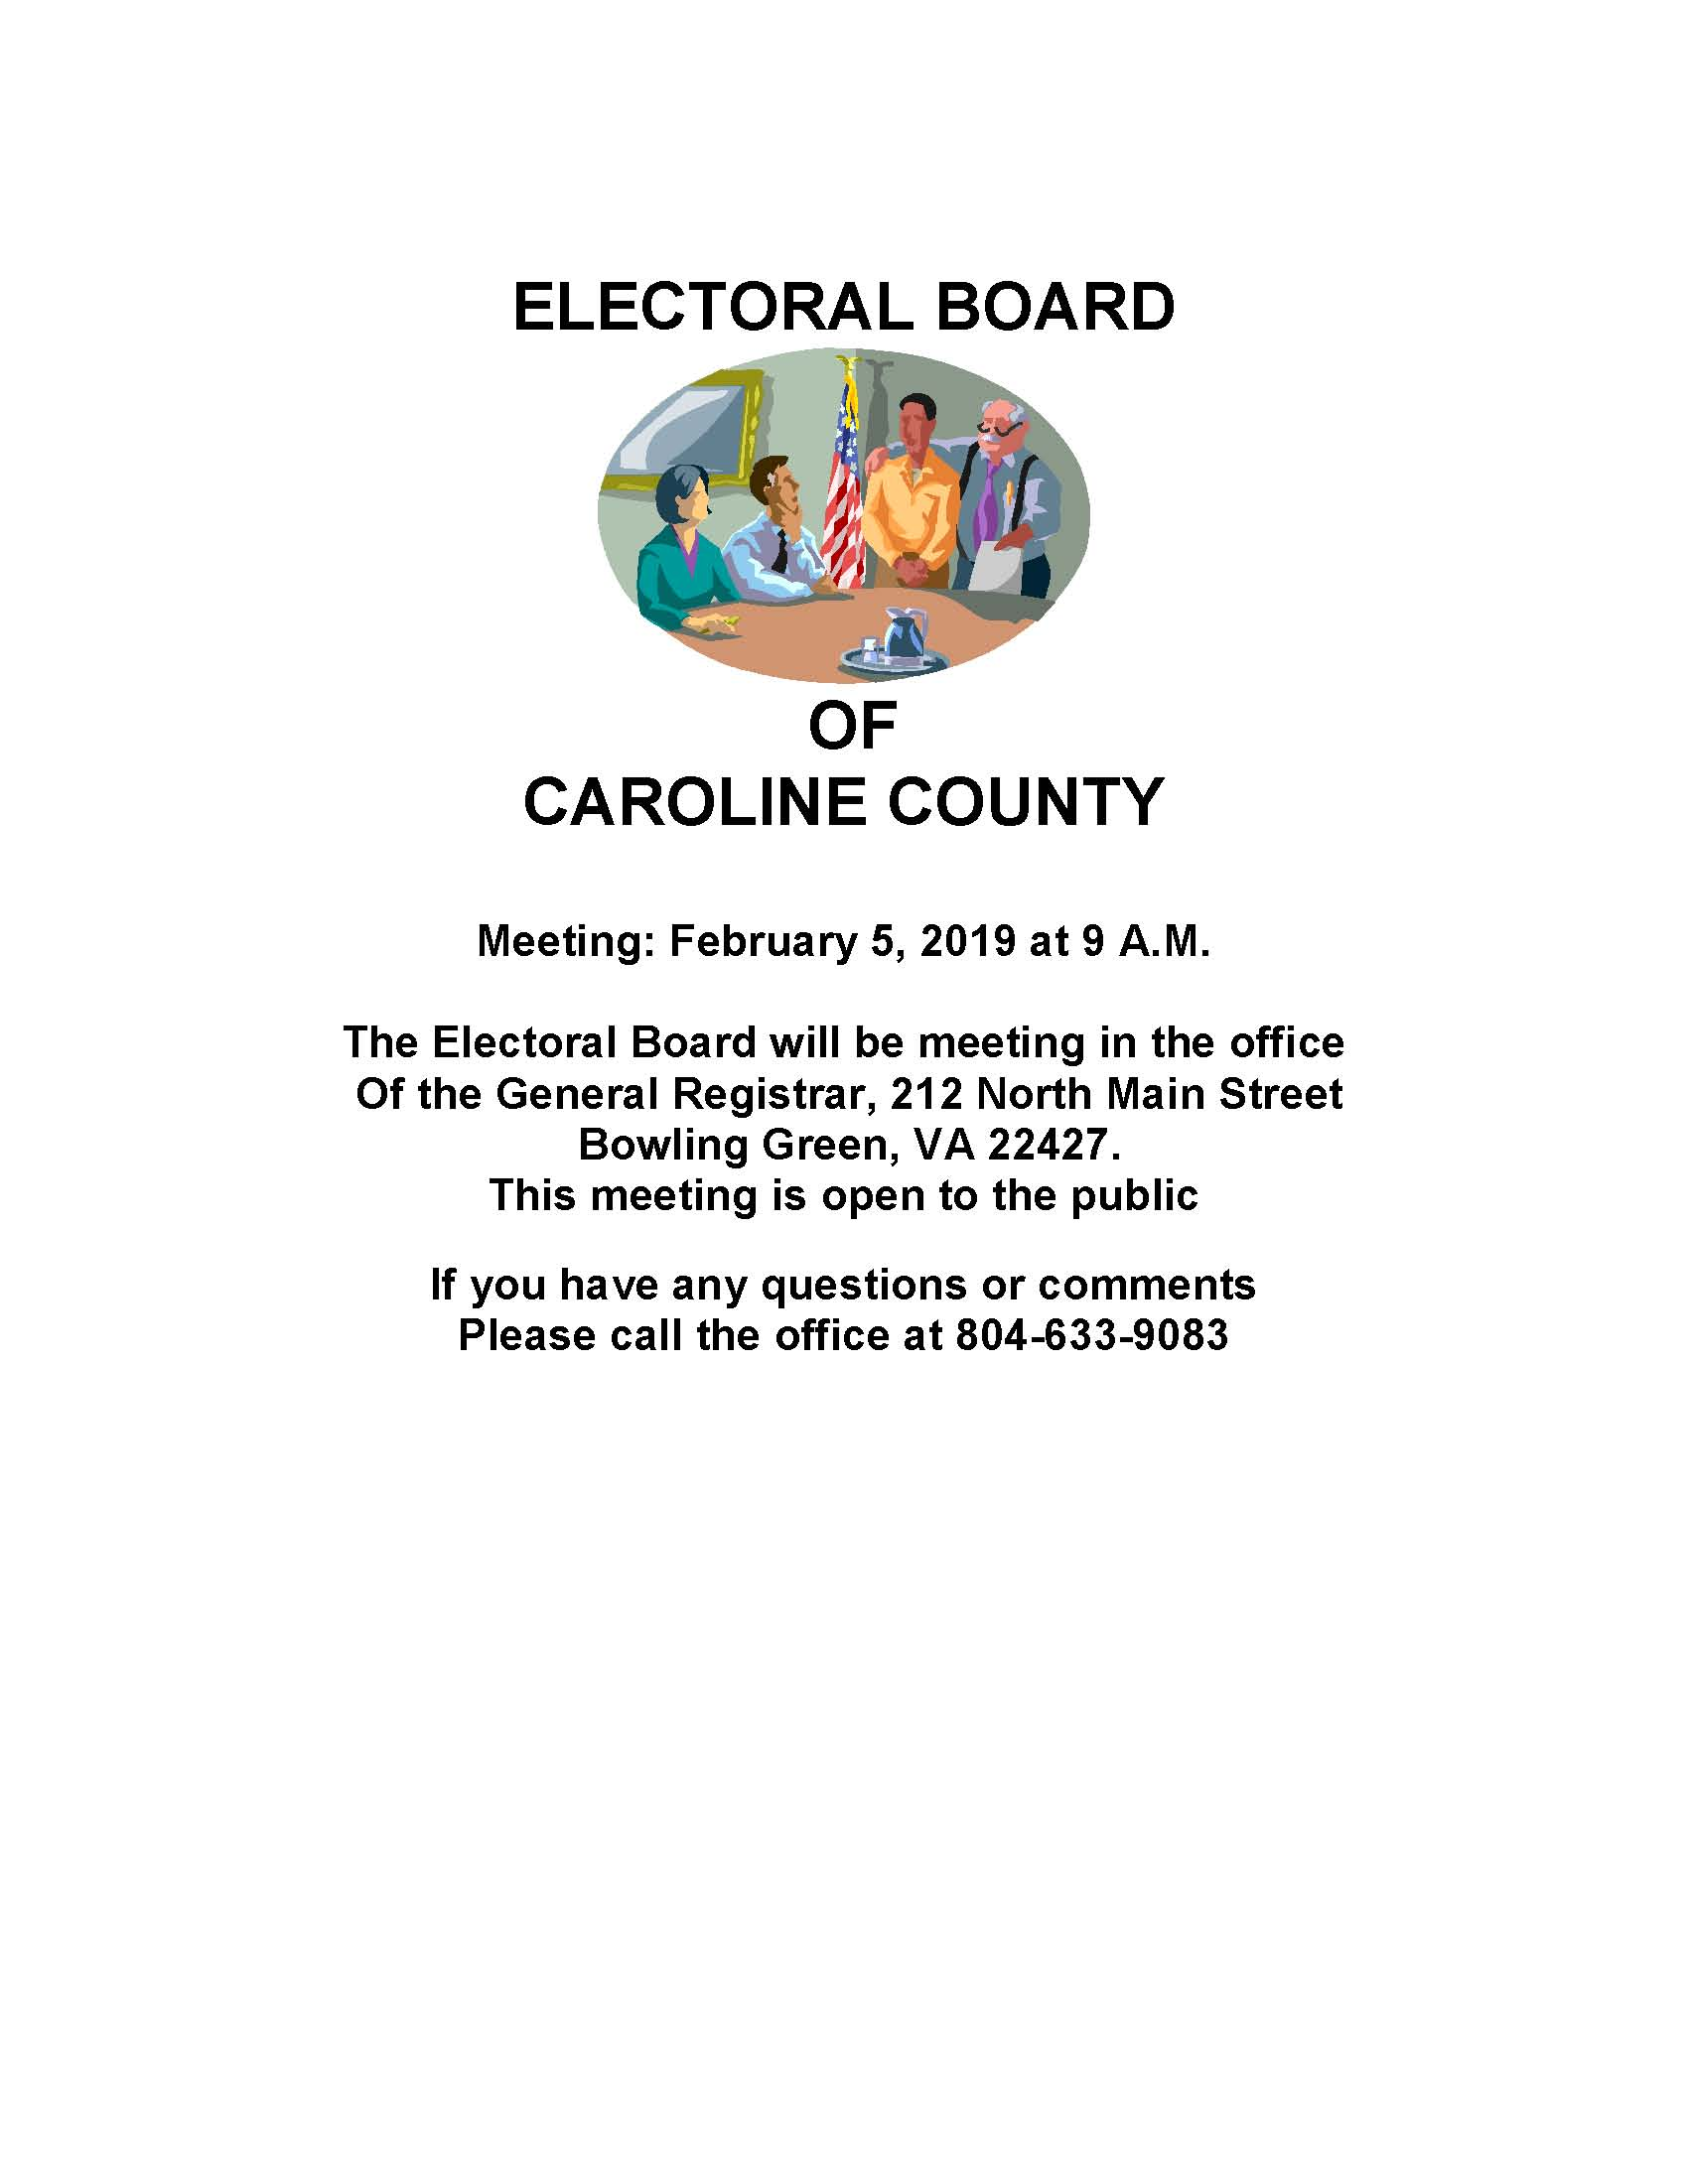 Electoral Board Meeting February 5, 2019